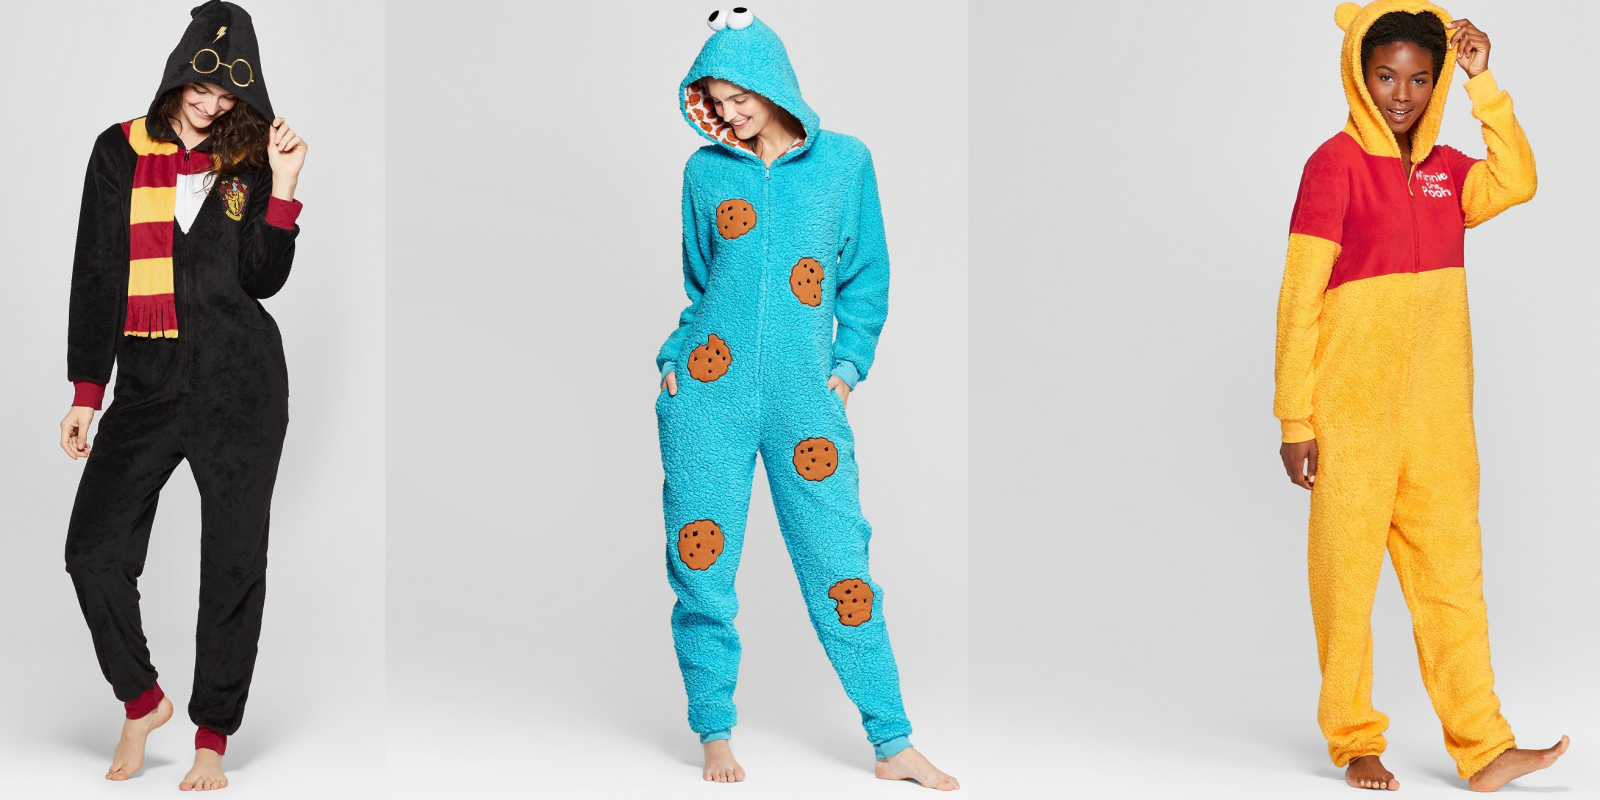 These women's onesie pajamas are comfy, cute, and on sale for $21 at Target (25% off)